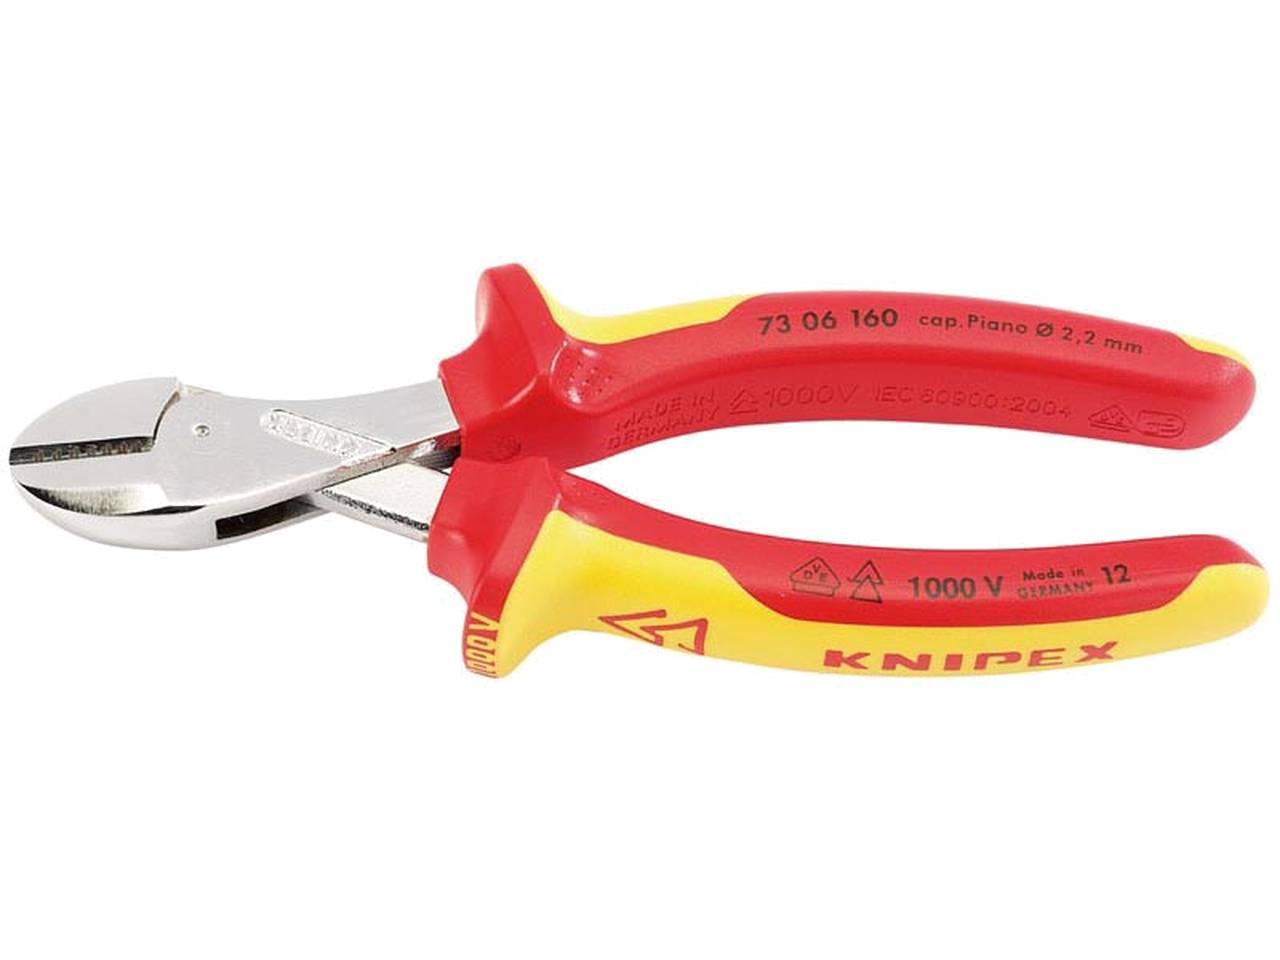 Knipex KPX1366180 VDE StriX Insulation Stripper with Cable Shears 180mm